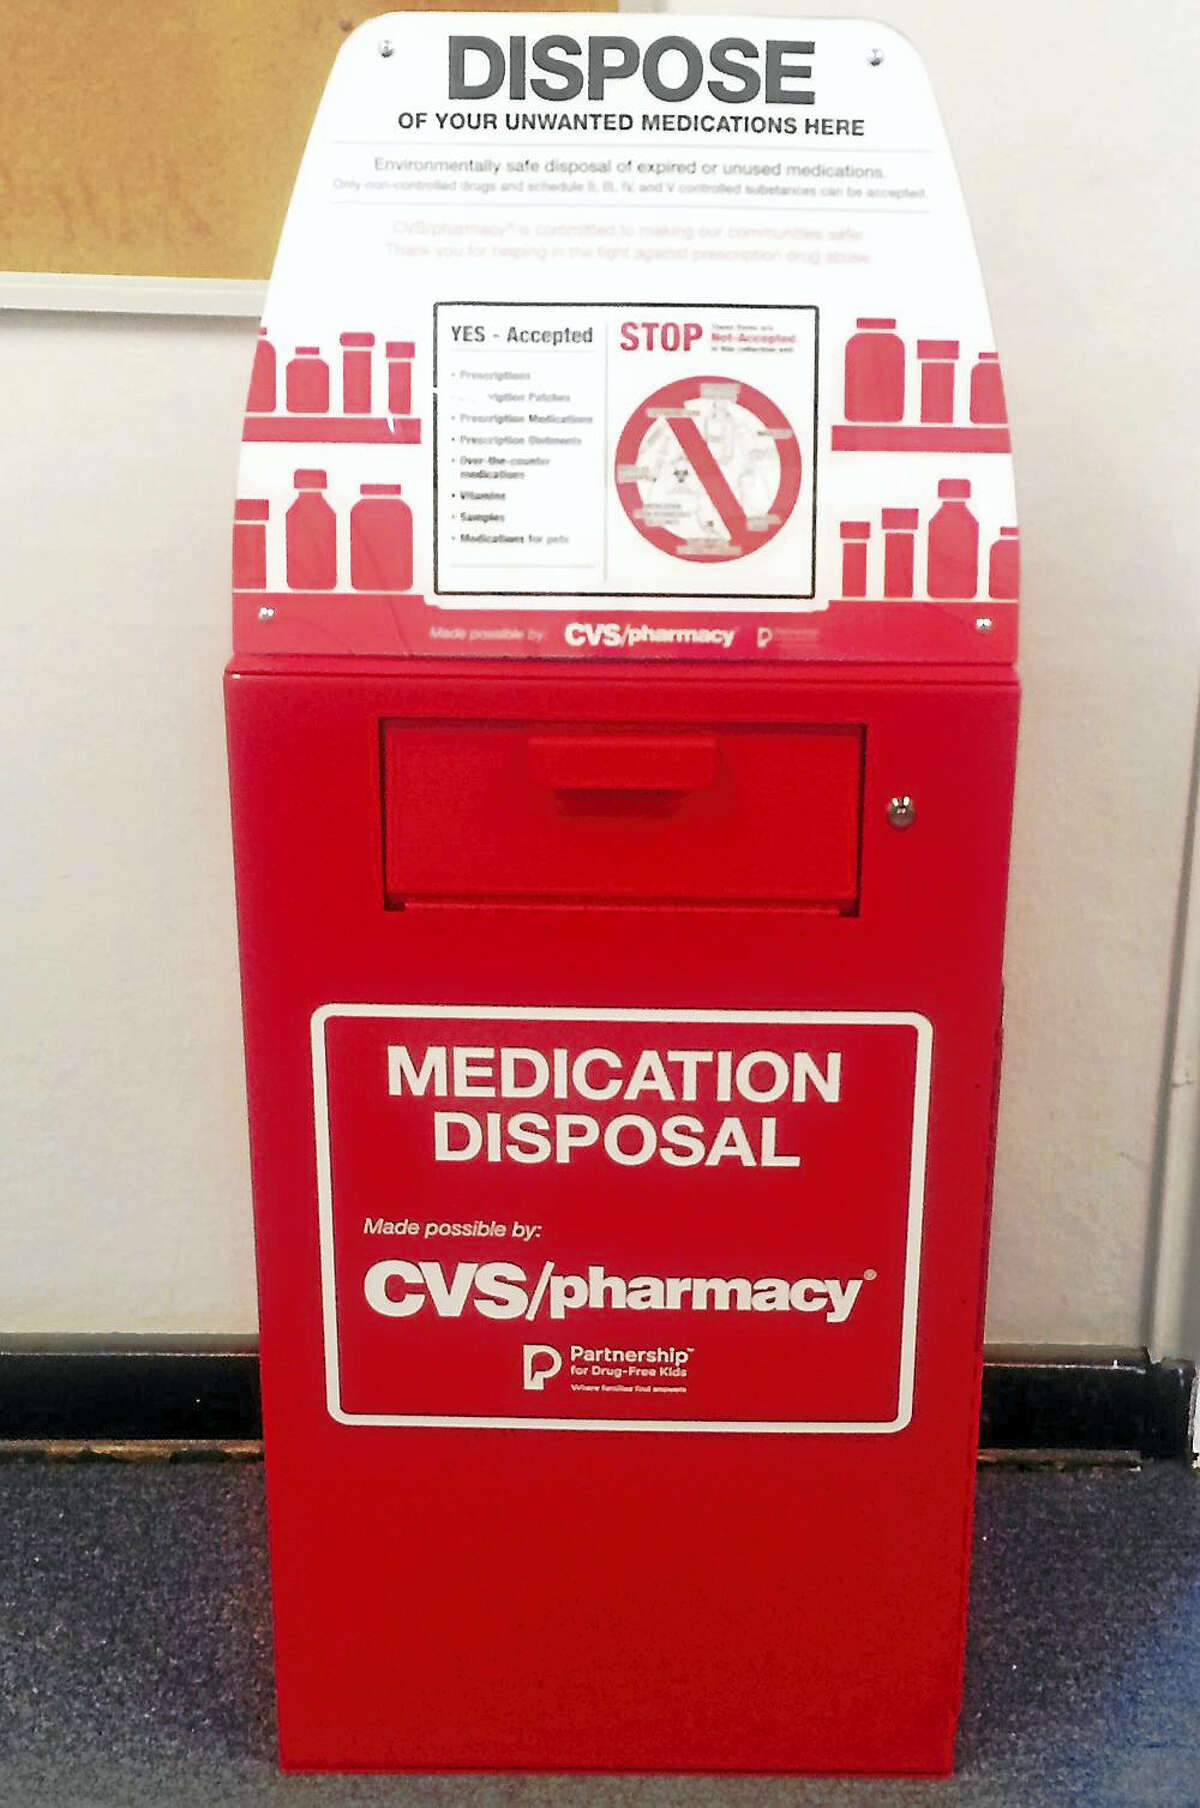 The Connecticut State Police have announced 11 new prescription drug drop-off box locations, each connected to a state police barrack. The boxes were installed after a donation by CVS Pharmacy.